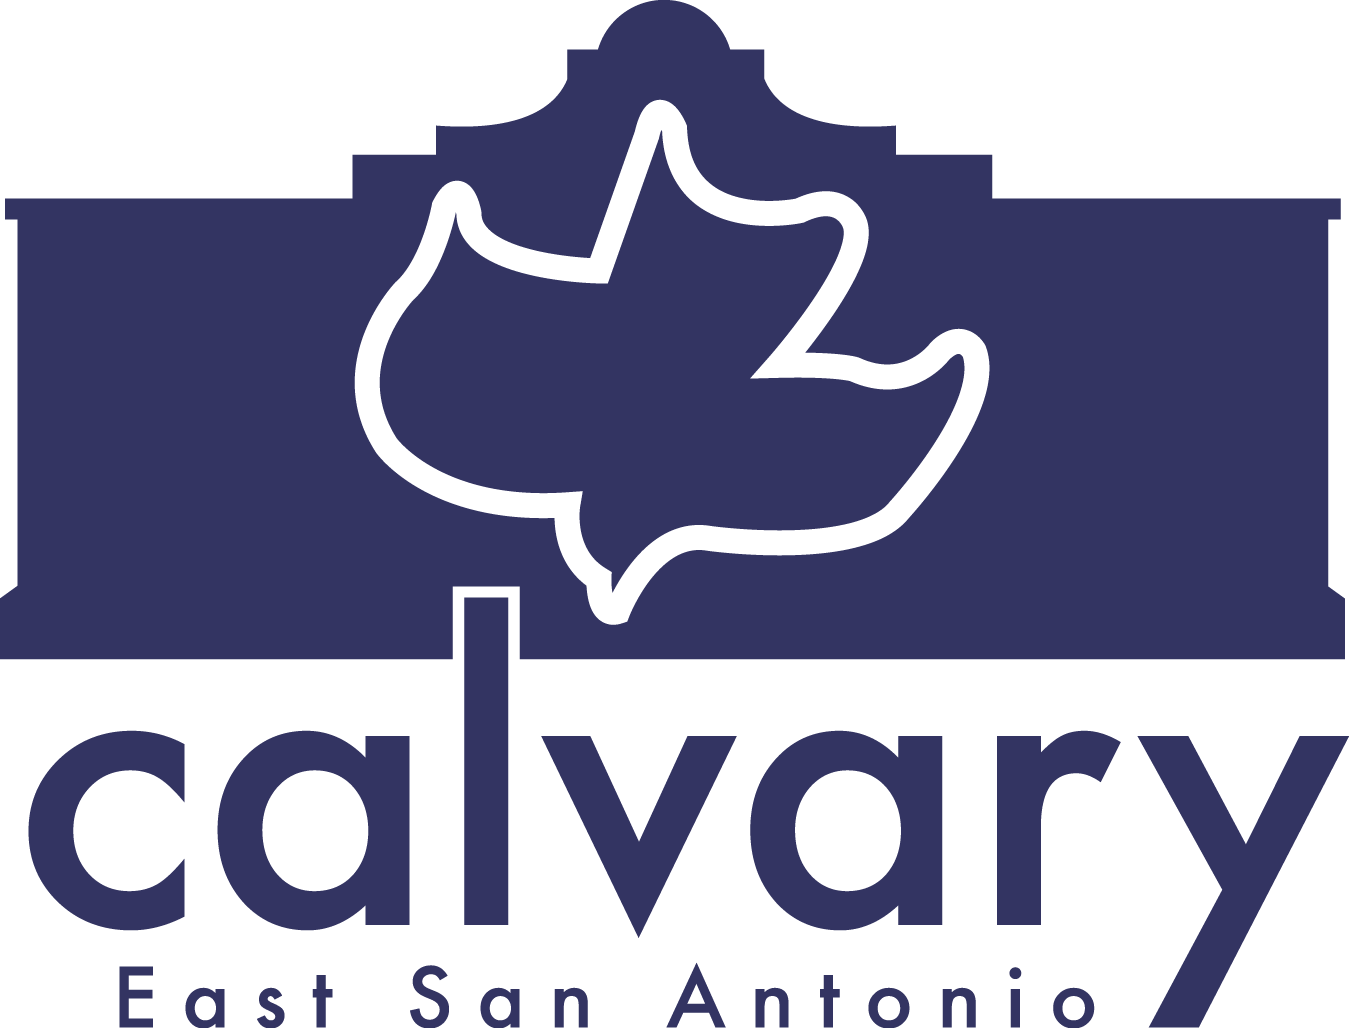 Calvary-Purple -White.png